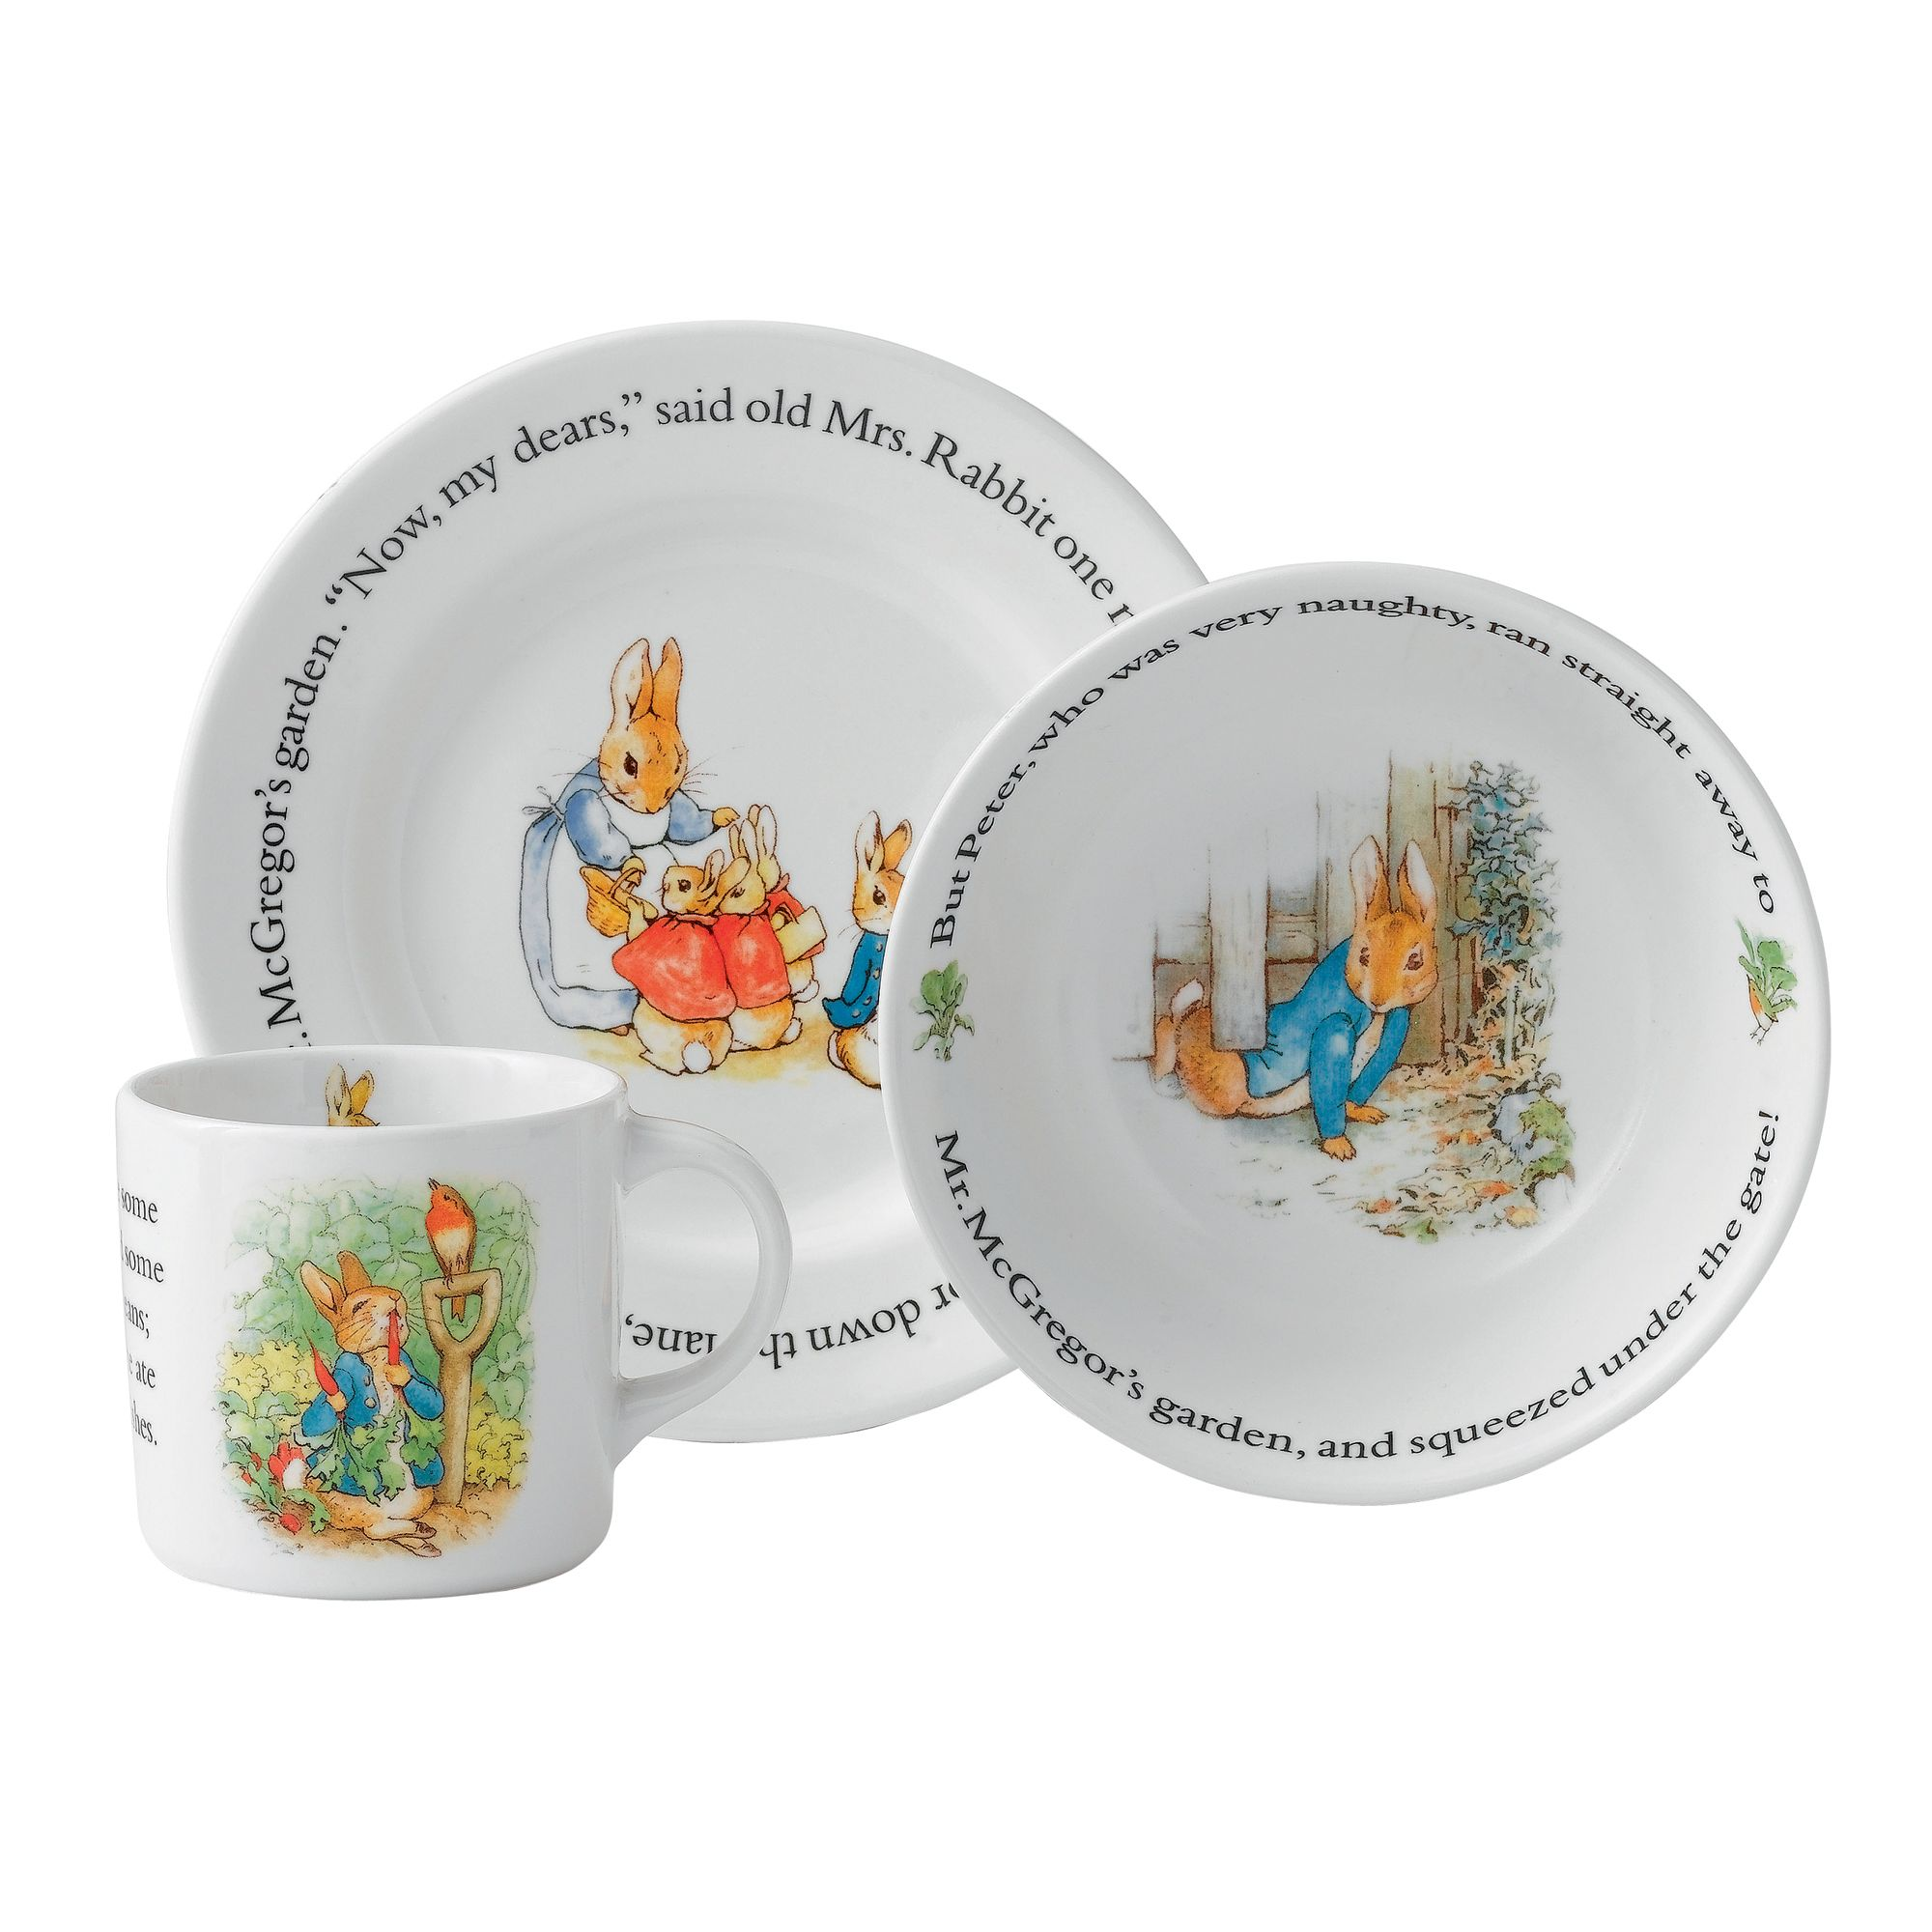 Peter Rabbit Original 3-Piece Set